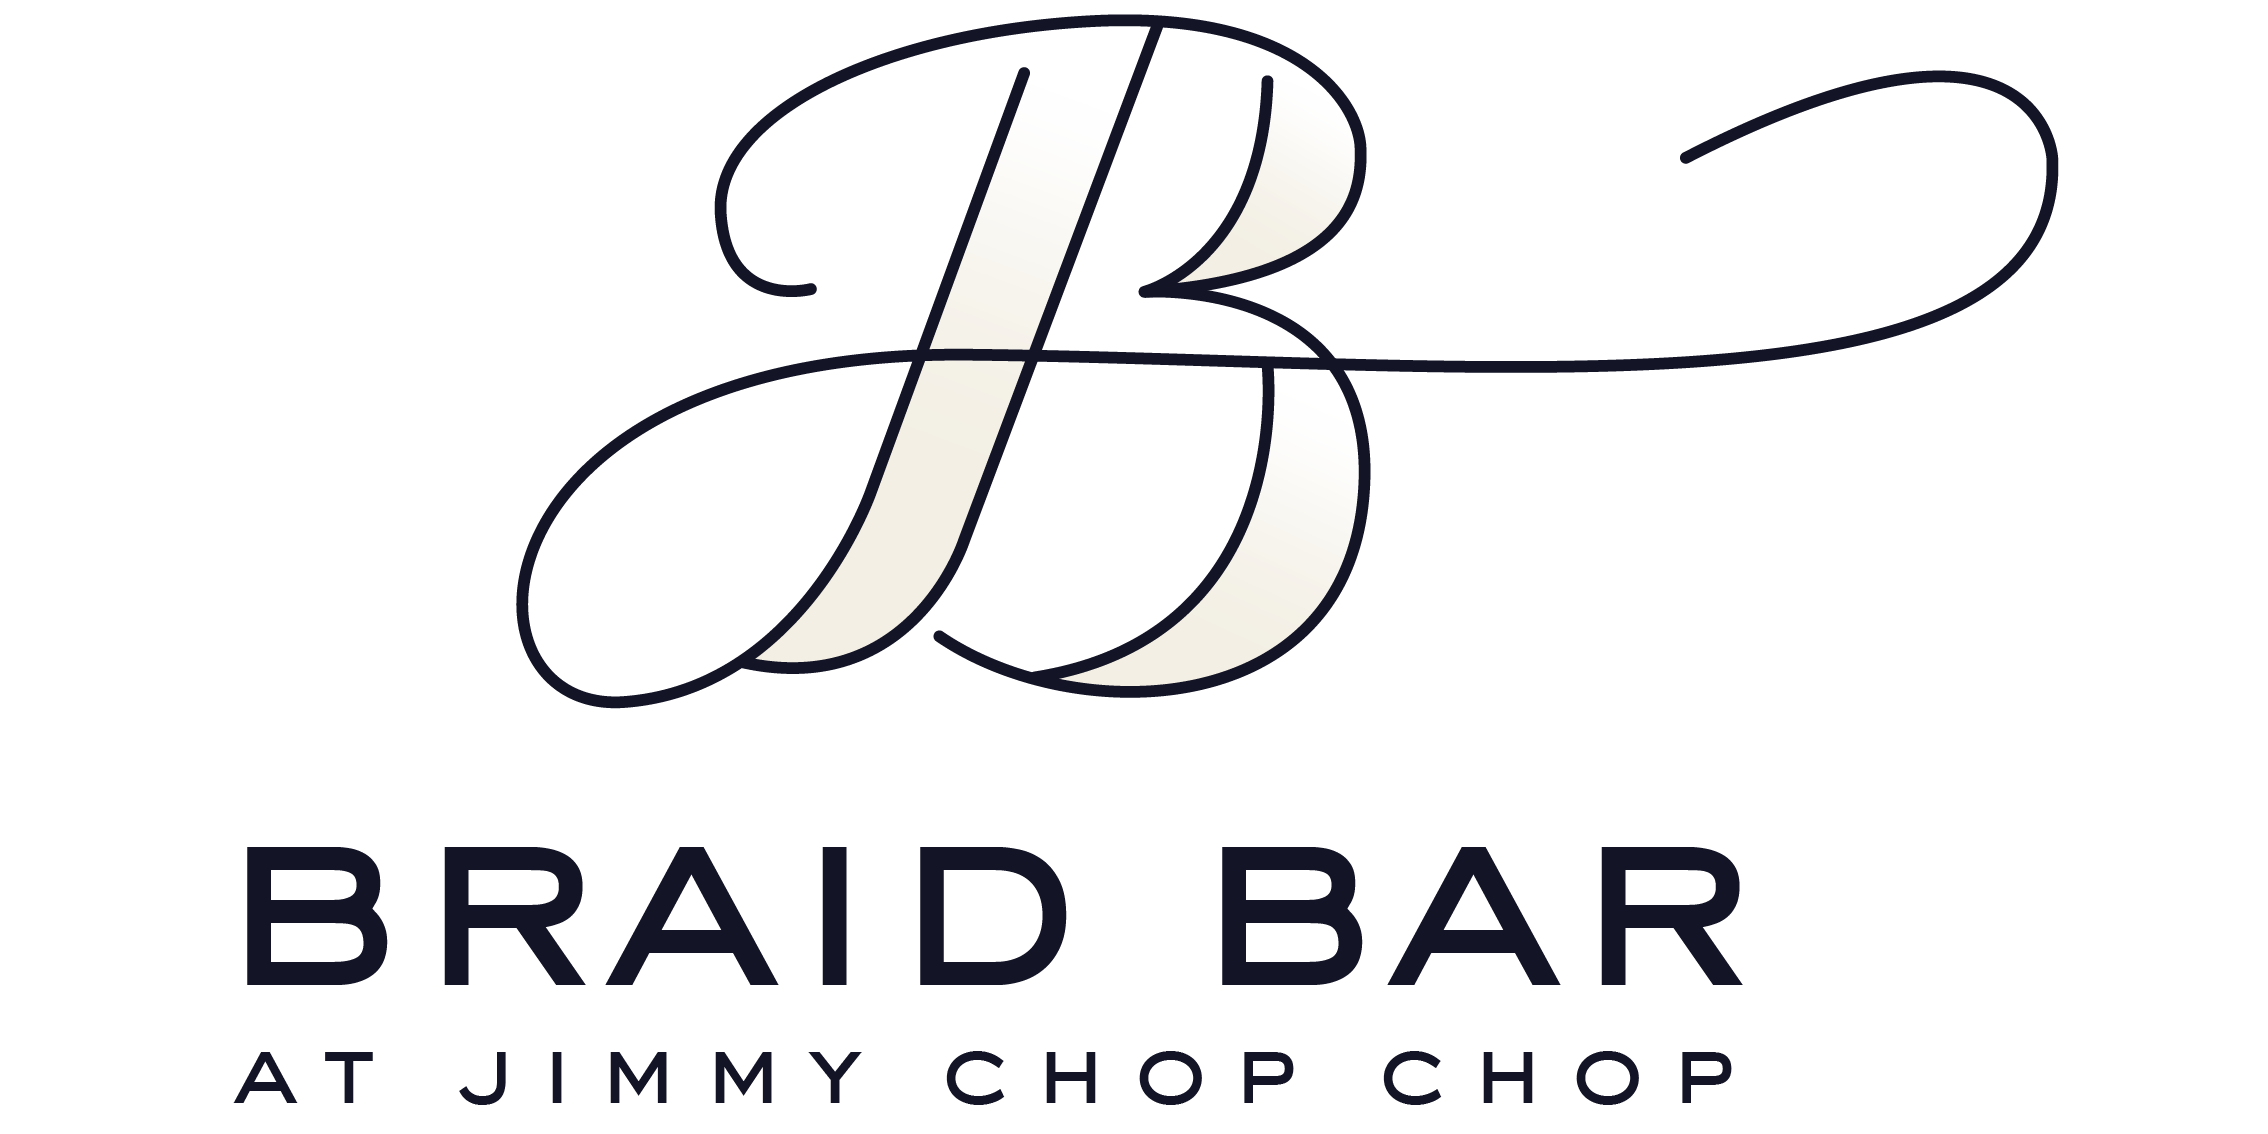 the-braid-bar-website